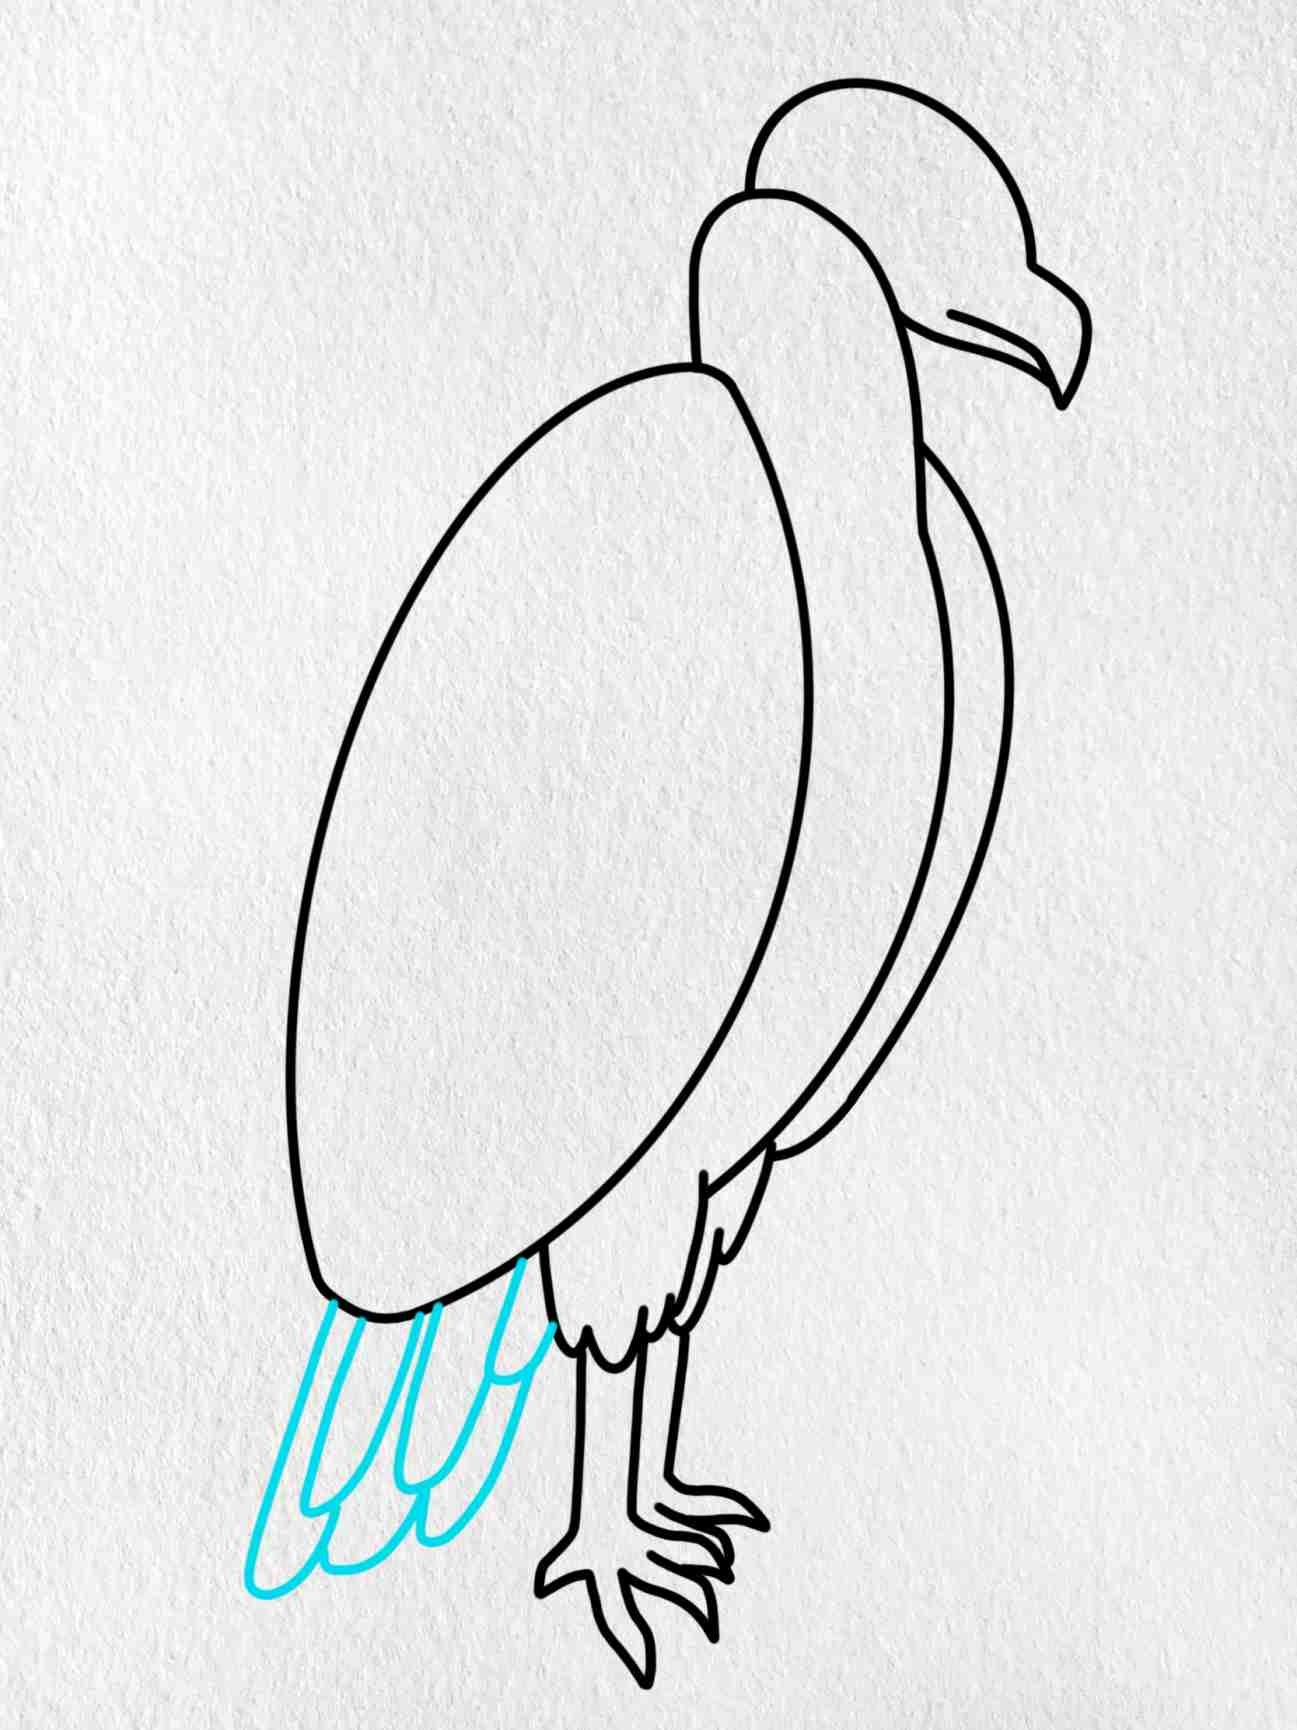 How To Draw A Vulture: Step 6